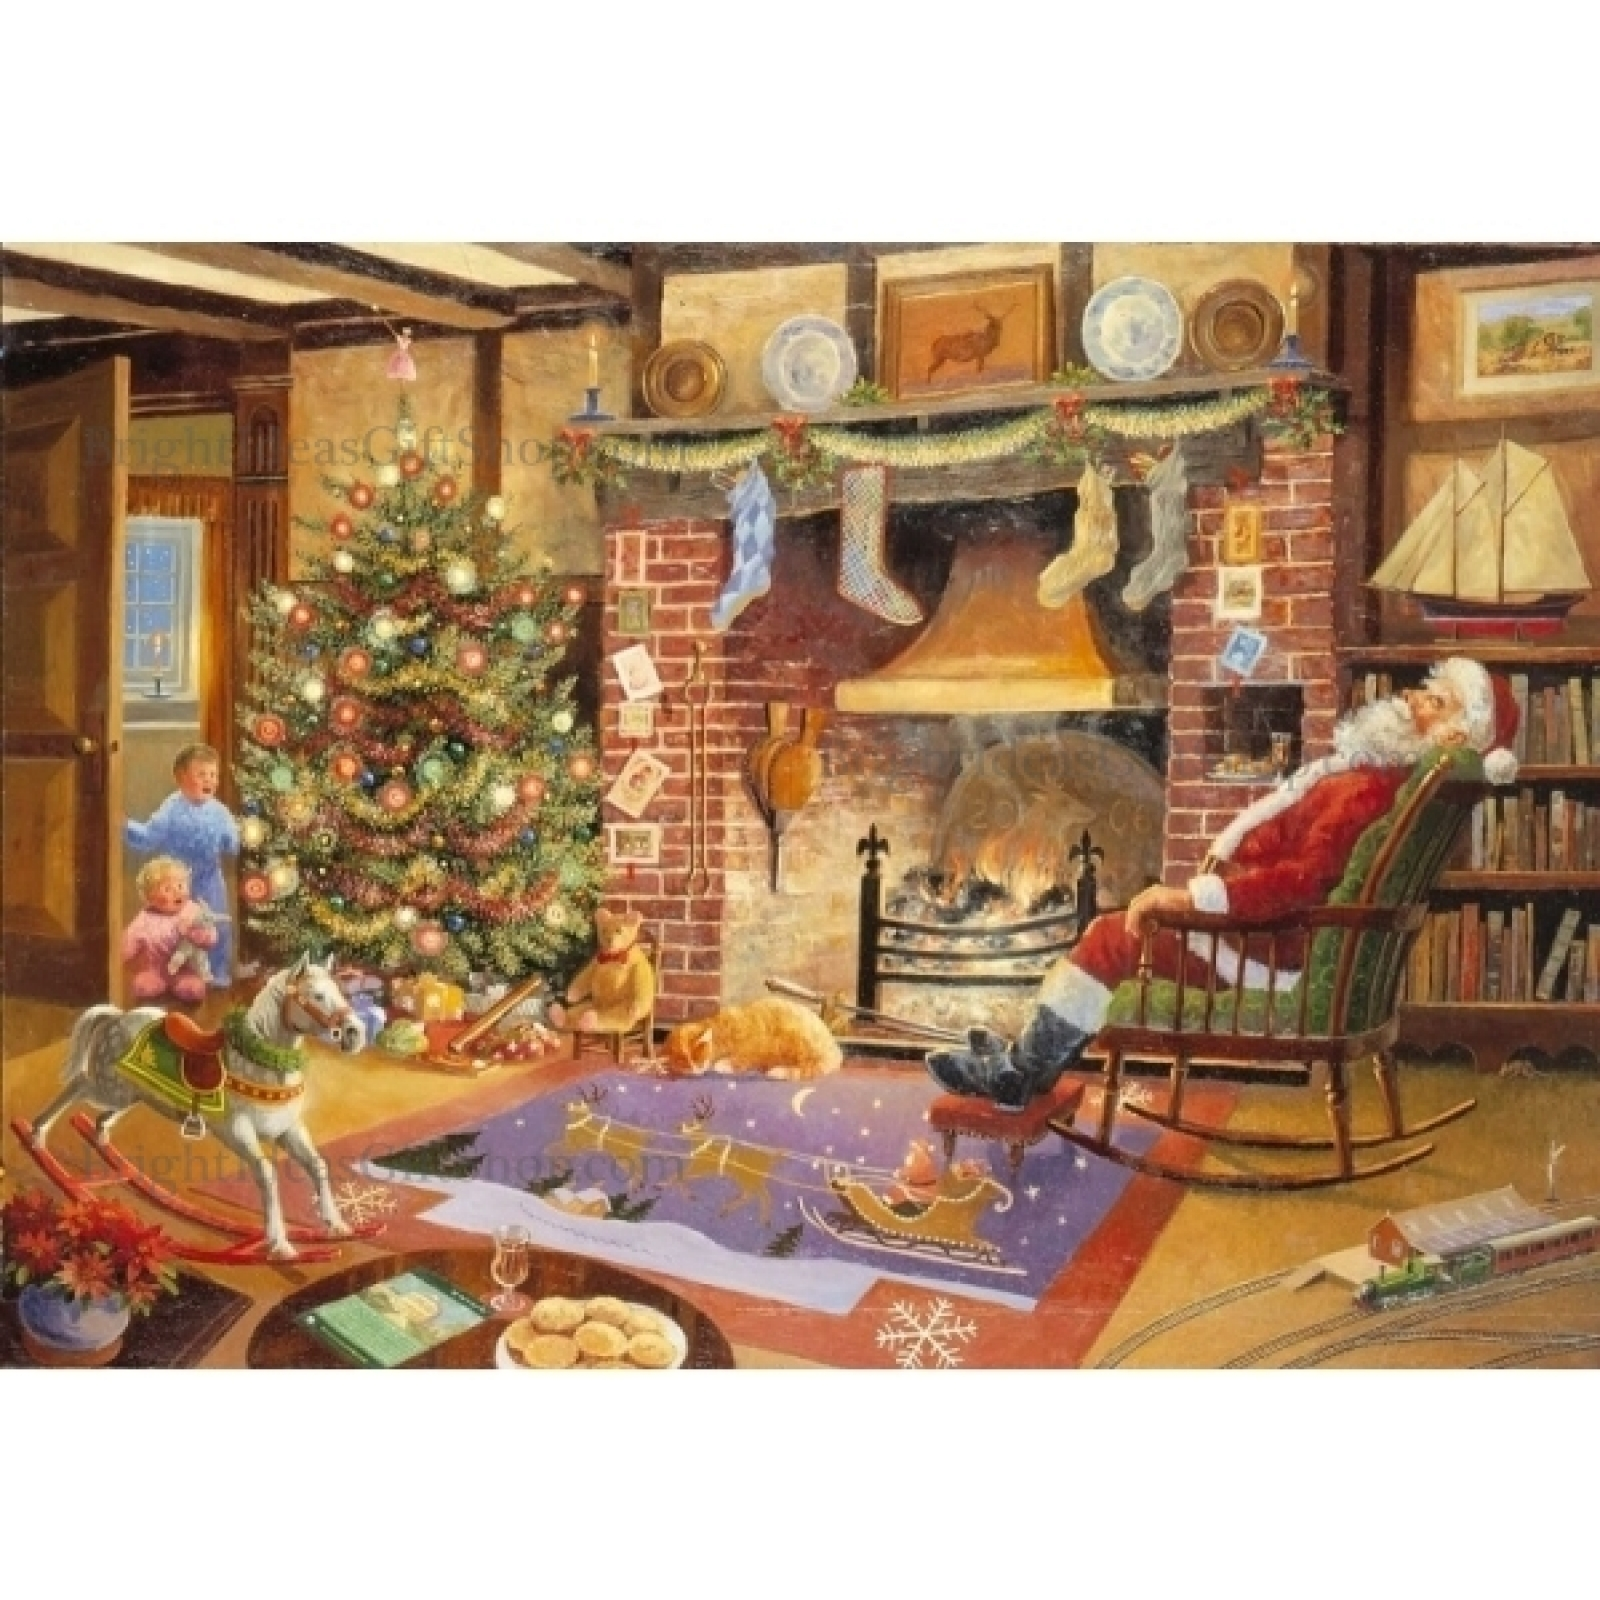 House Of Puzzles 1000 PIECE JIGSAW PUZZLE Christmas Eve Collectors No 13